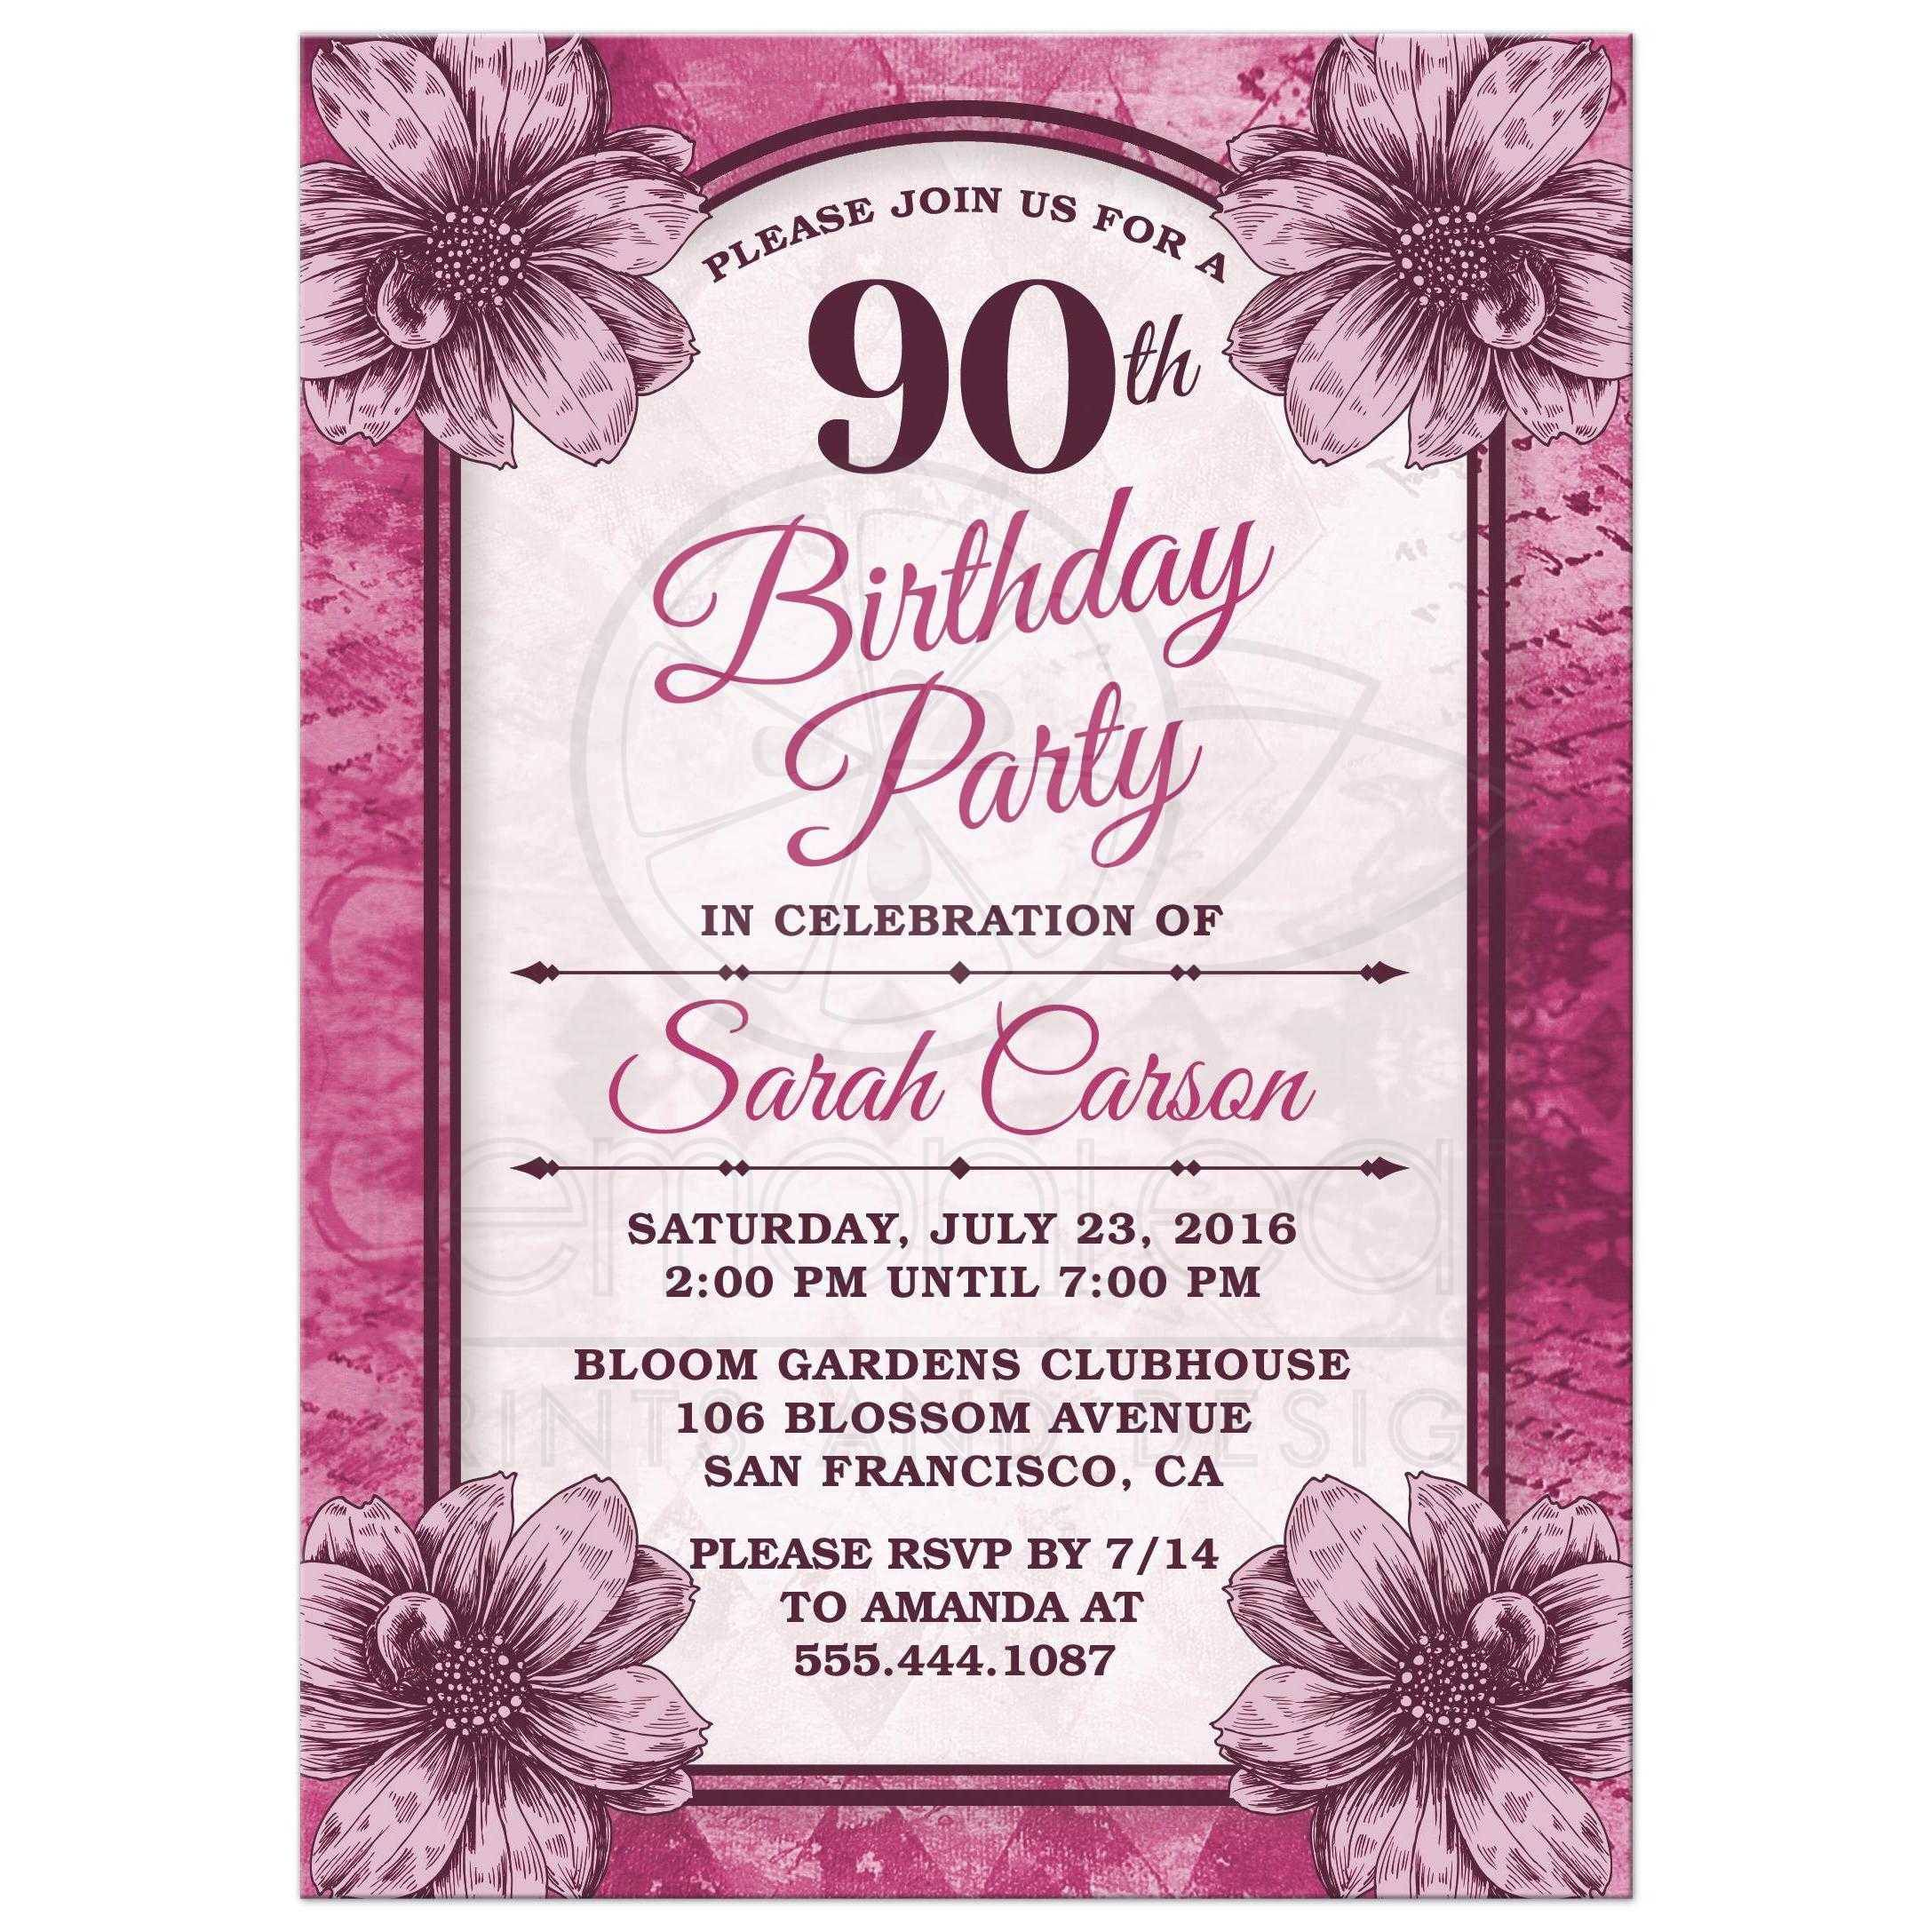 90th Birthday Party Invitations Templates Free  Party Invitation Template Word